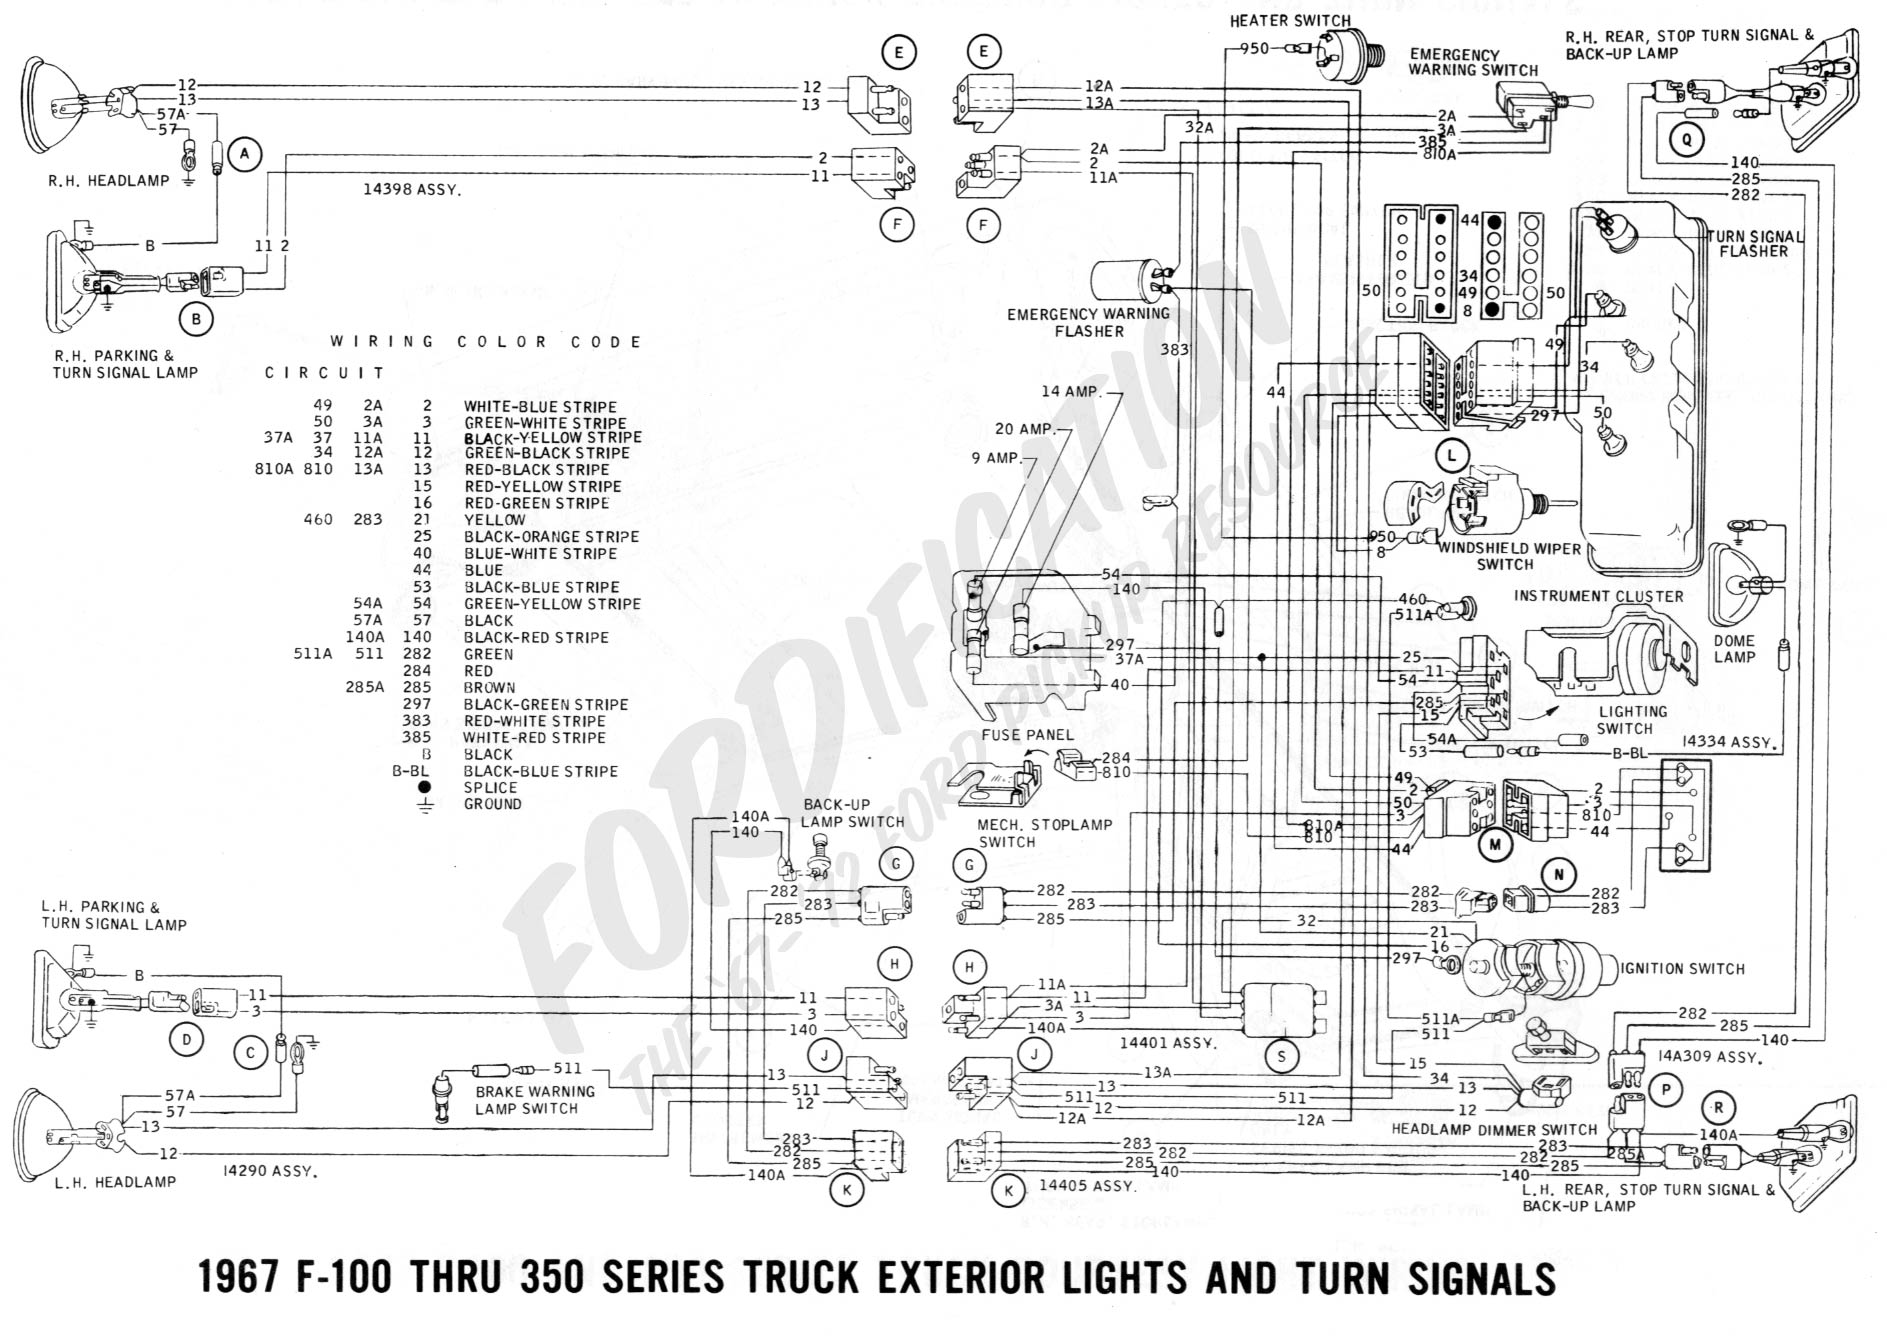 wiring 1967extlights02 signal stat 800 wiring diagram 3 wire turn signal diagram \u2022 wiring 67 mustang wiring diagram at alyssarenee.co